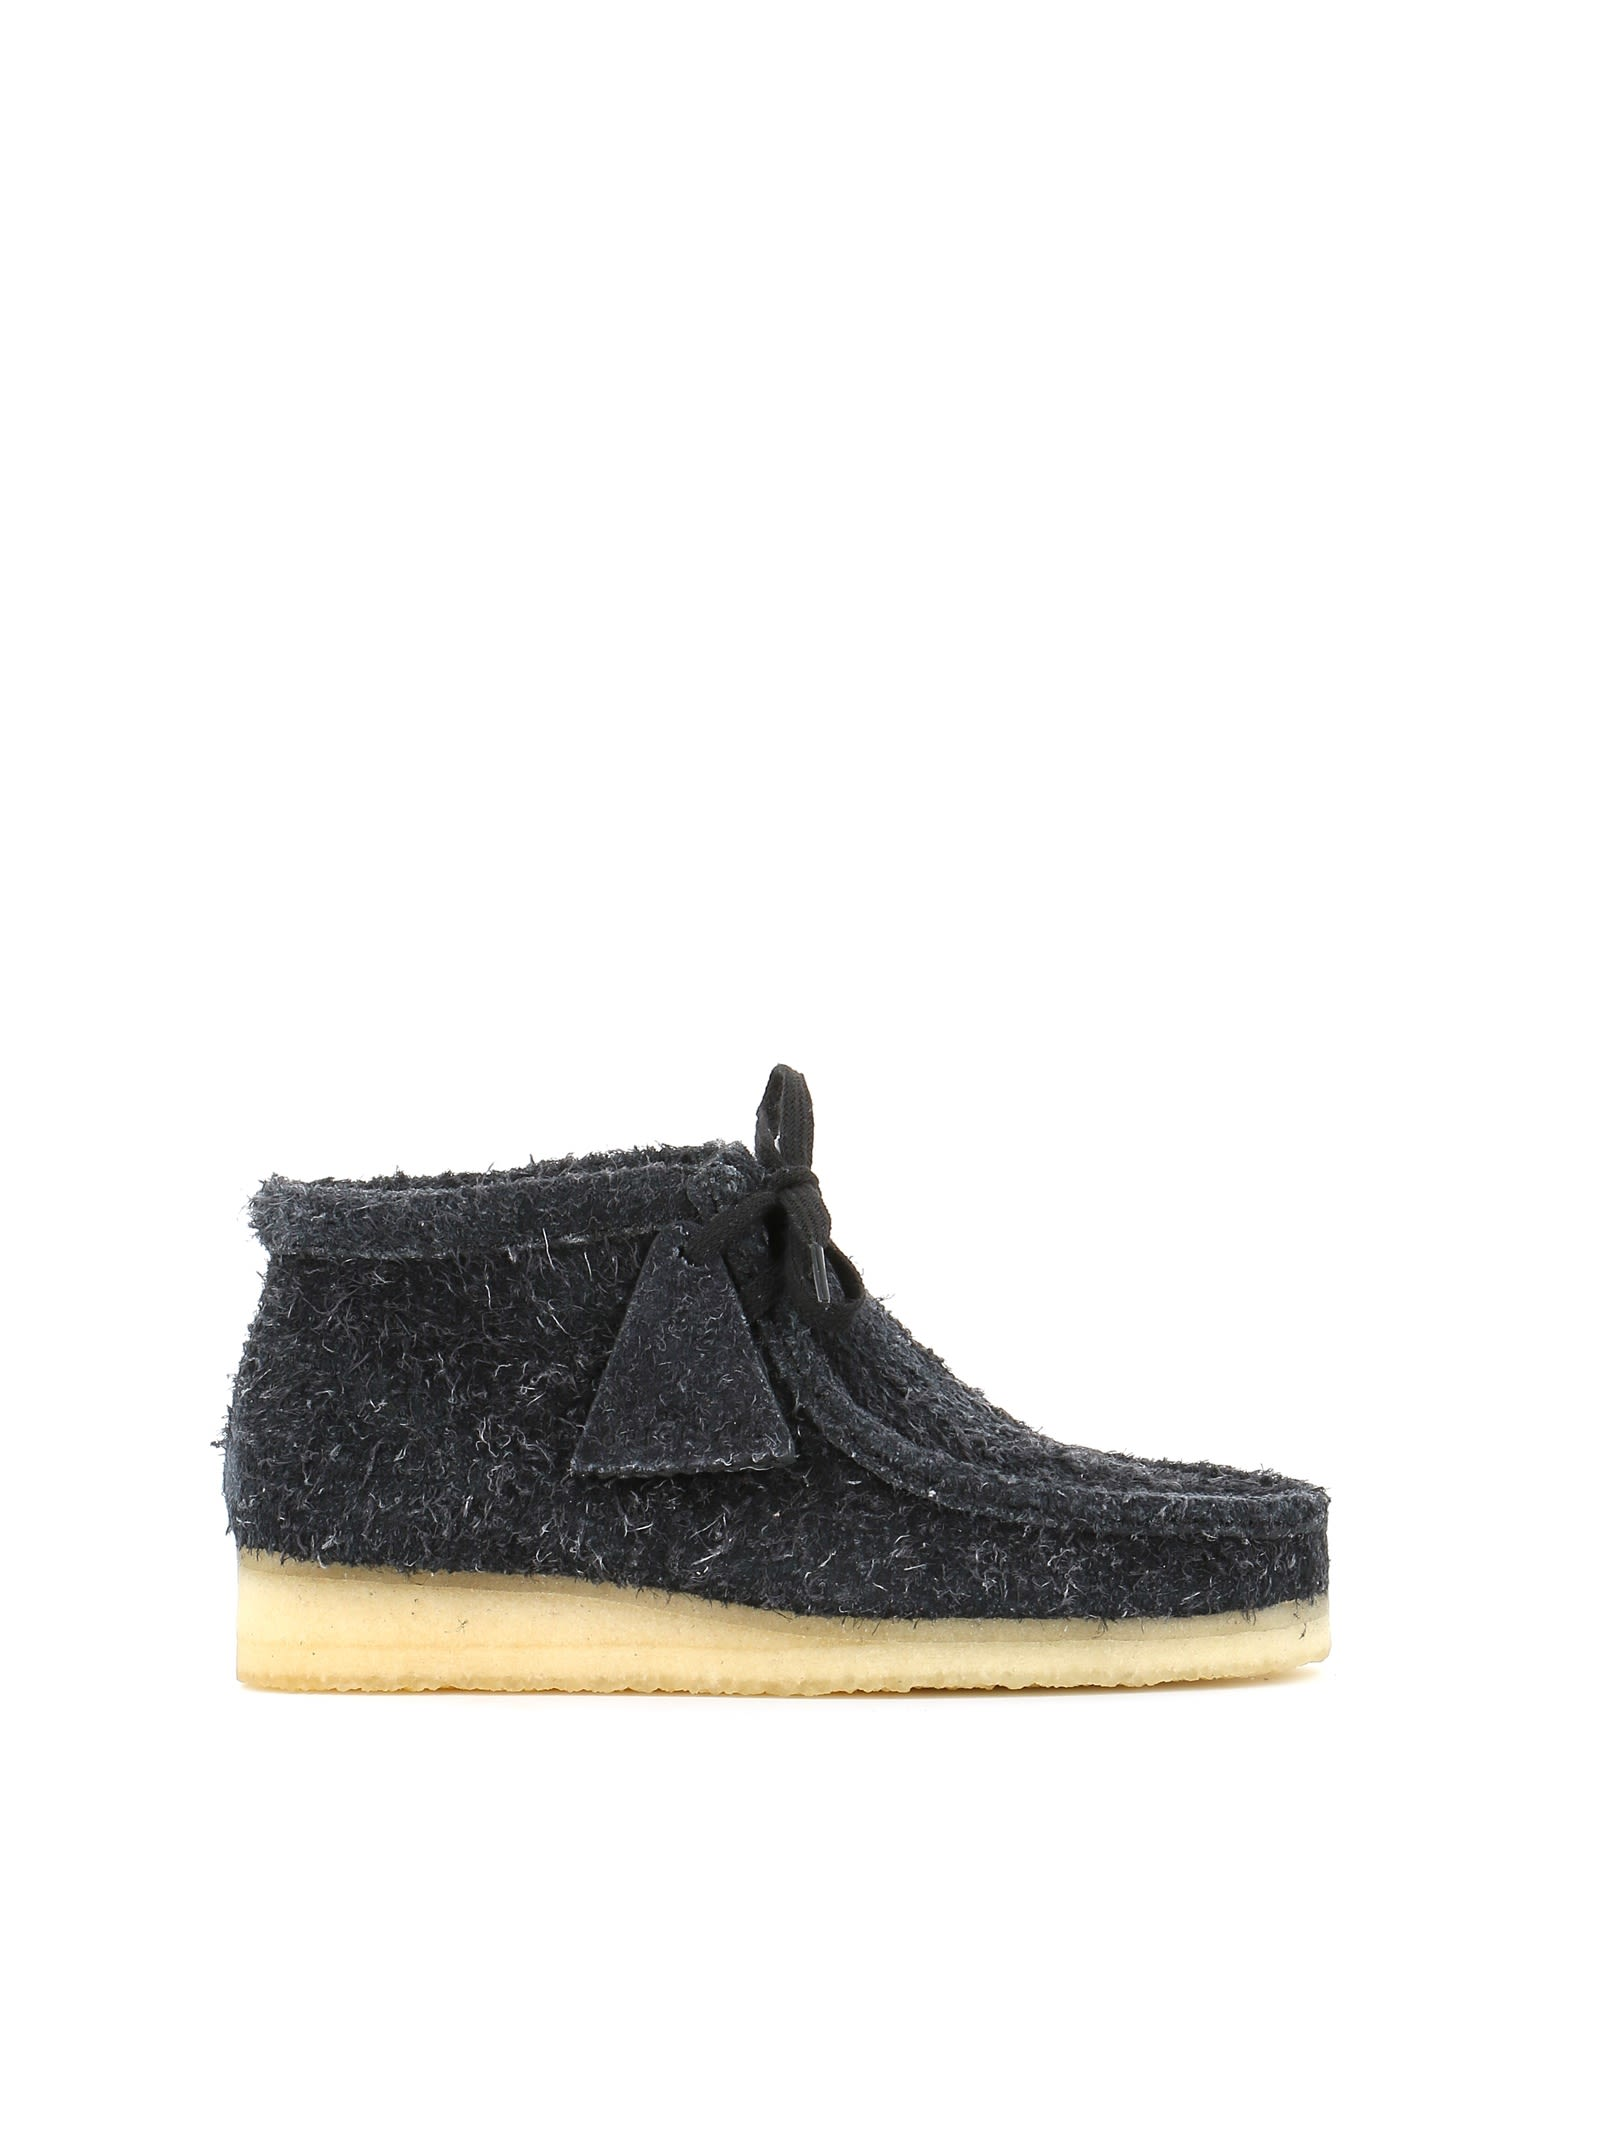 "Desert-Boots ""Wallabee Boot"" in Black"